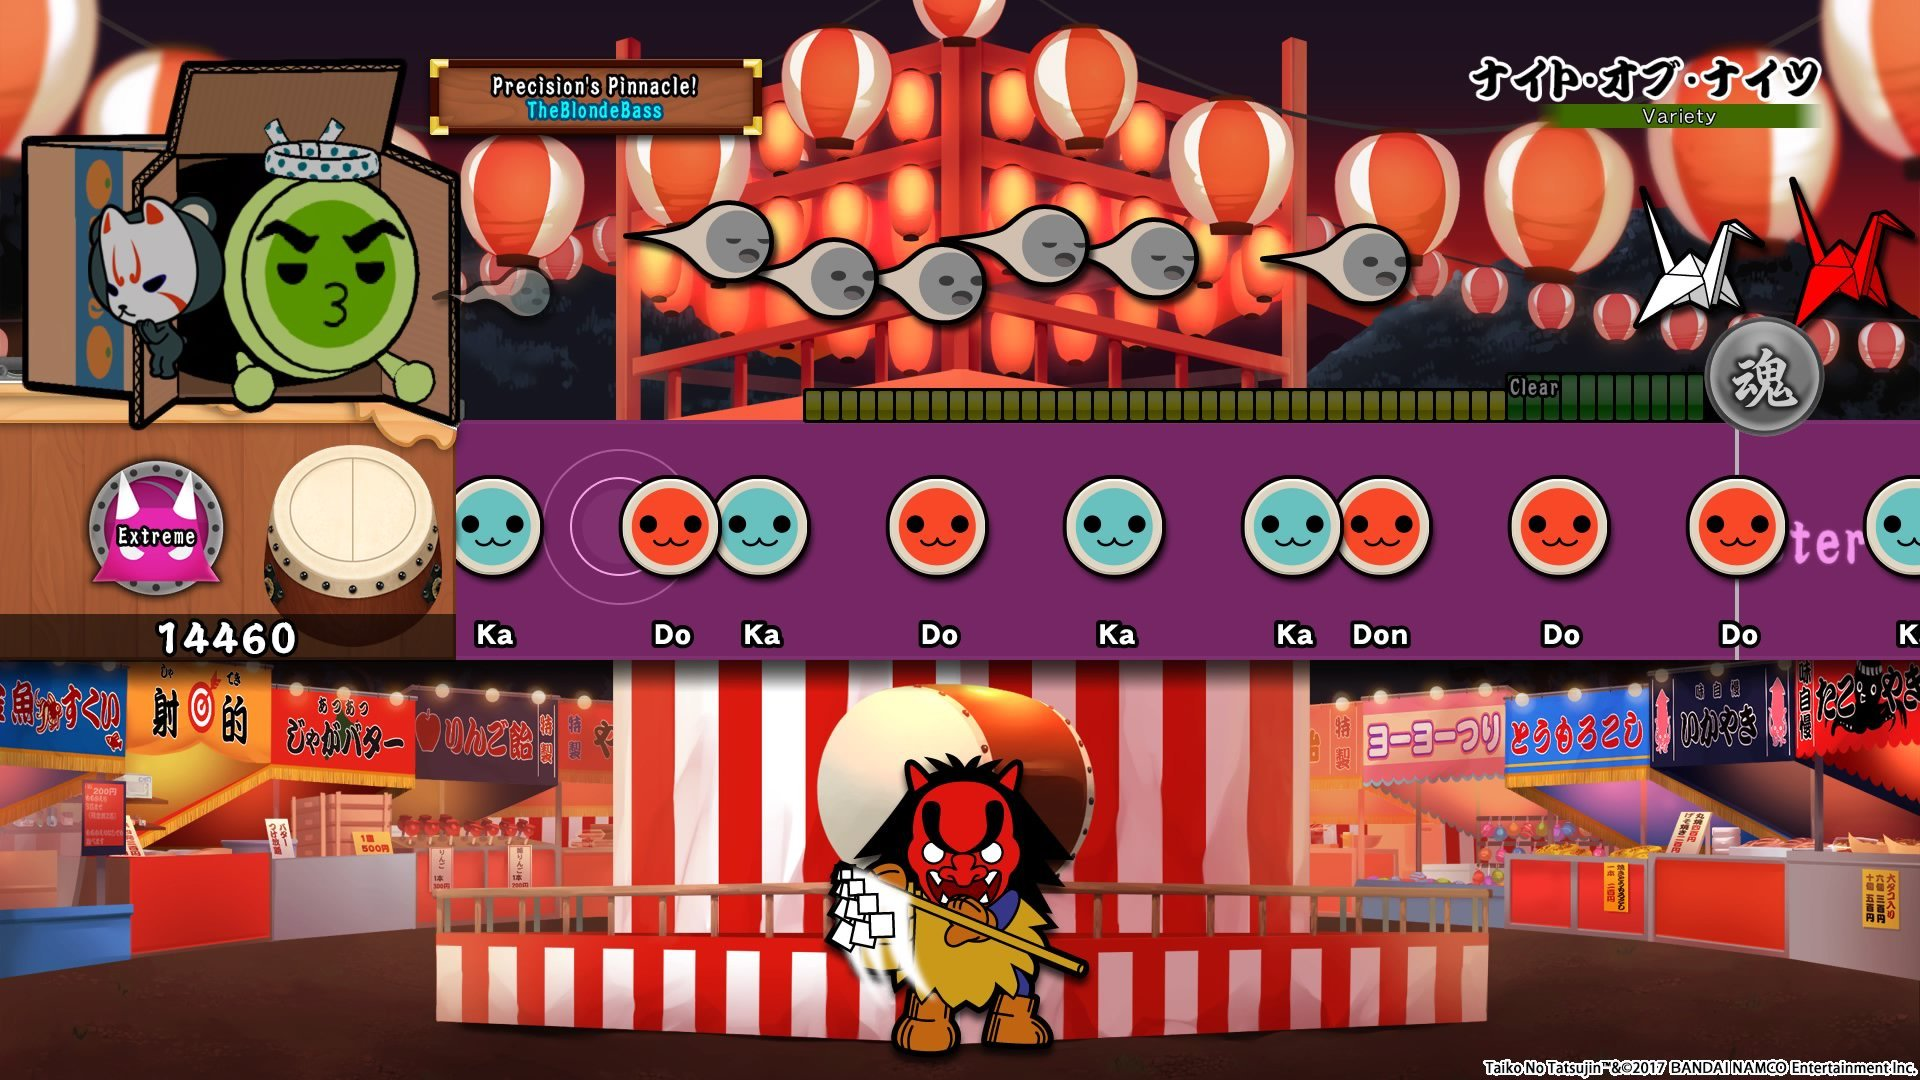 Taiko no Tatsujin: Drum Session! Only Releasing Digitally in